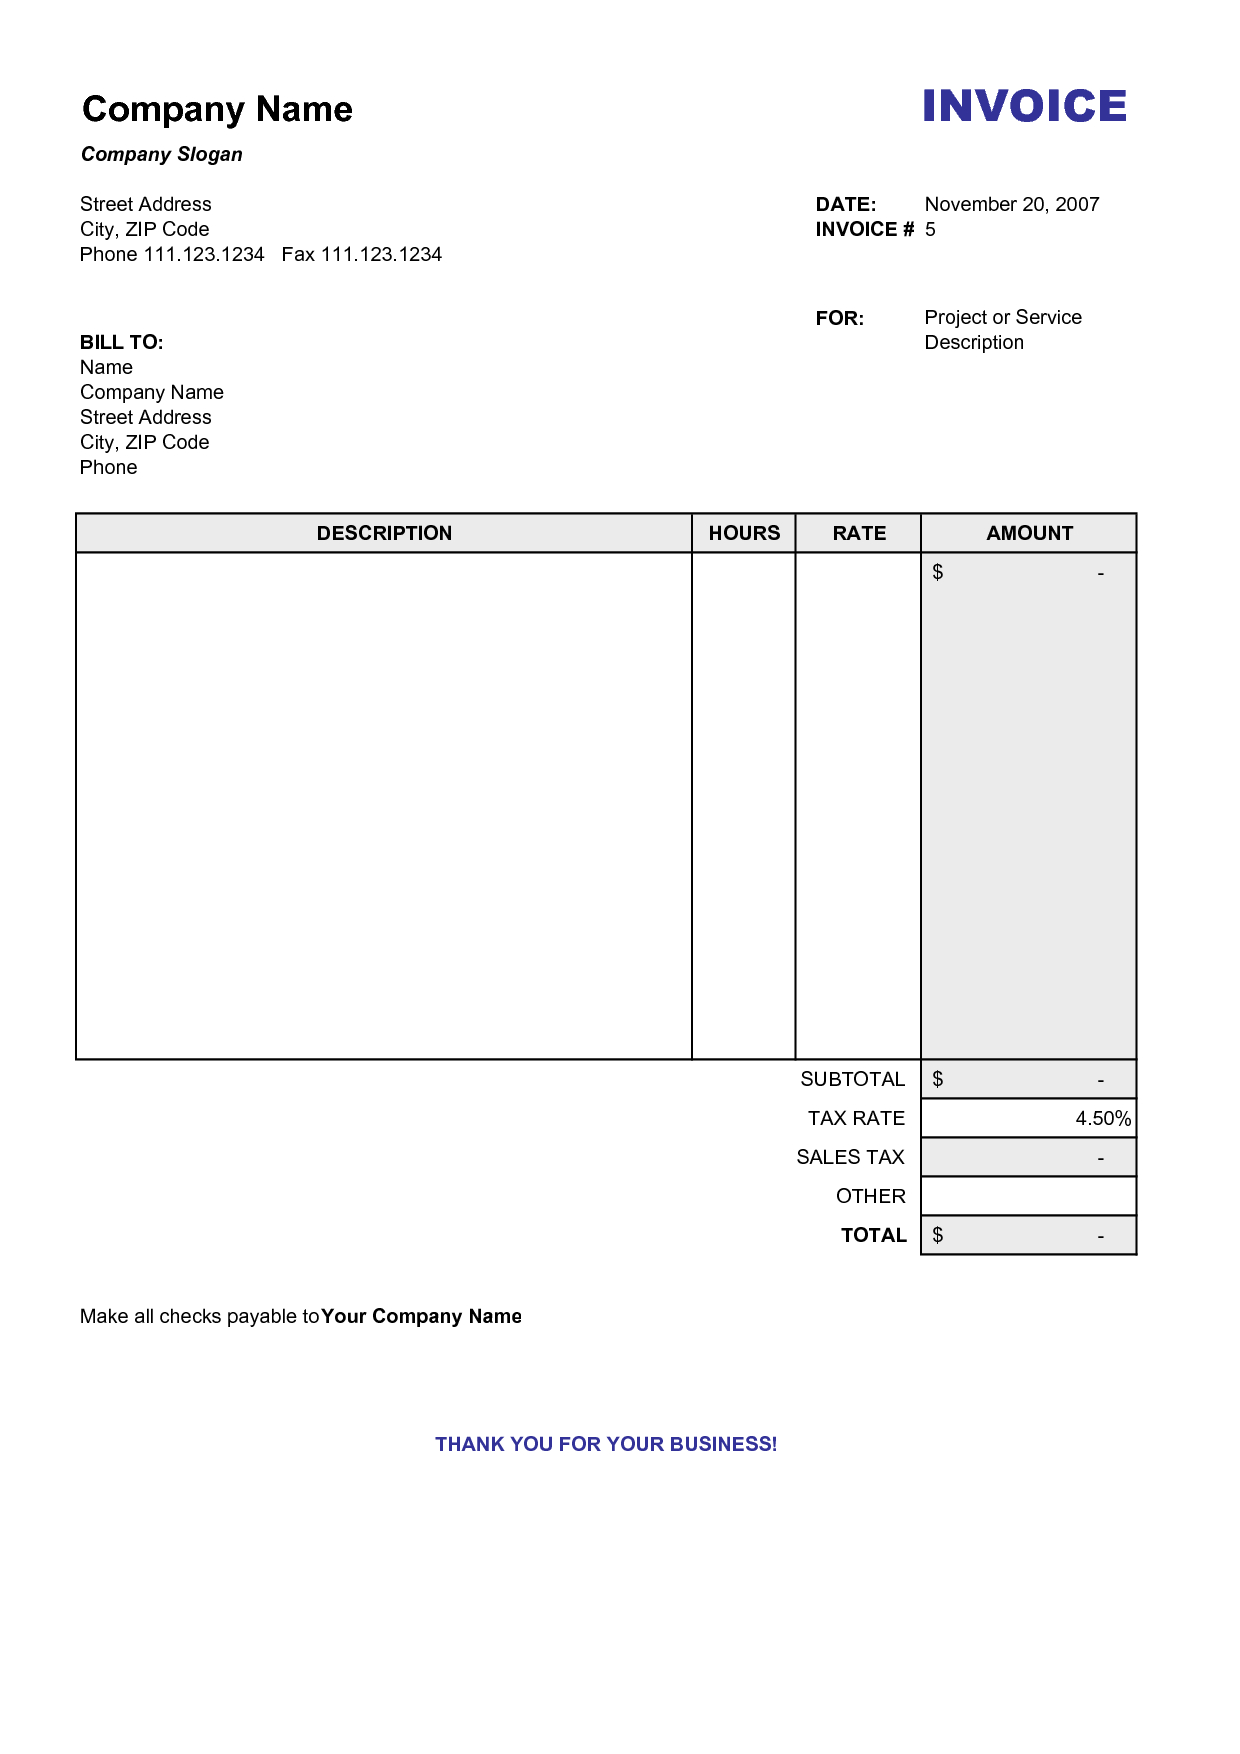 Blank Billing Invoice | Scope Of Work Template | Organization - Free Bill Invoice Template Printable